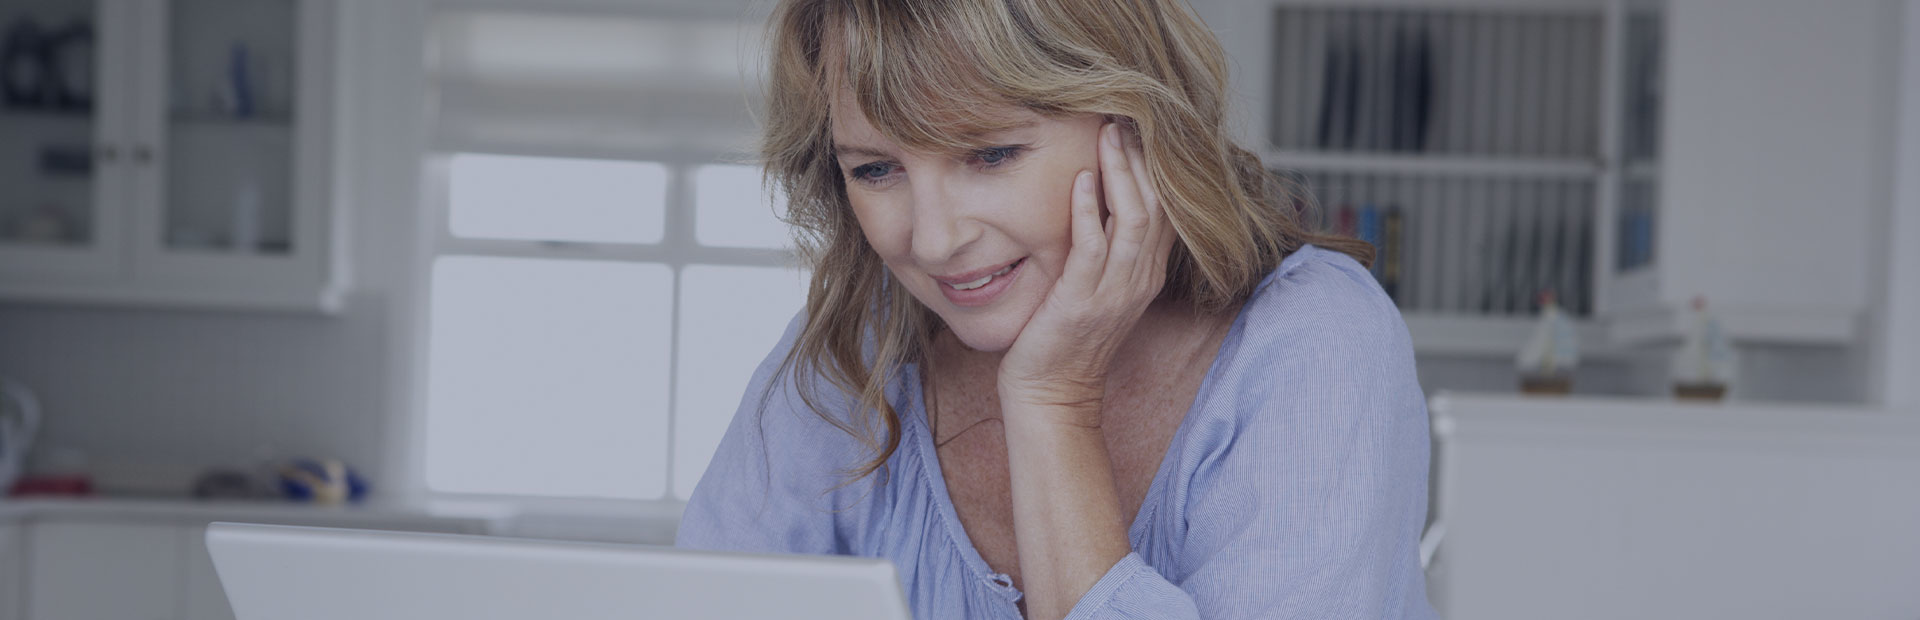 A woman in her 40s is sitting in a kitchen, reading about how to fix common denture problems from her laptop and is making notes.